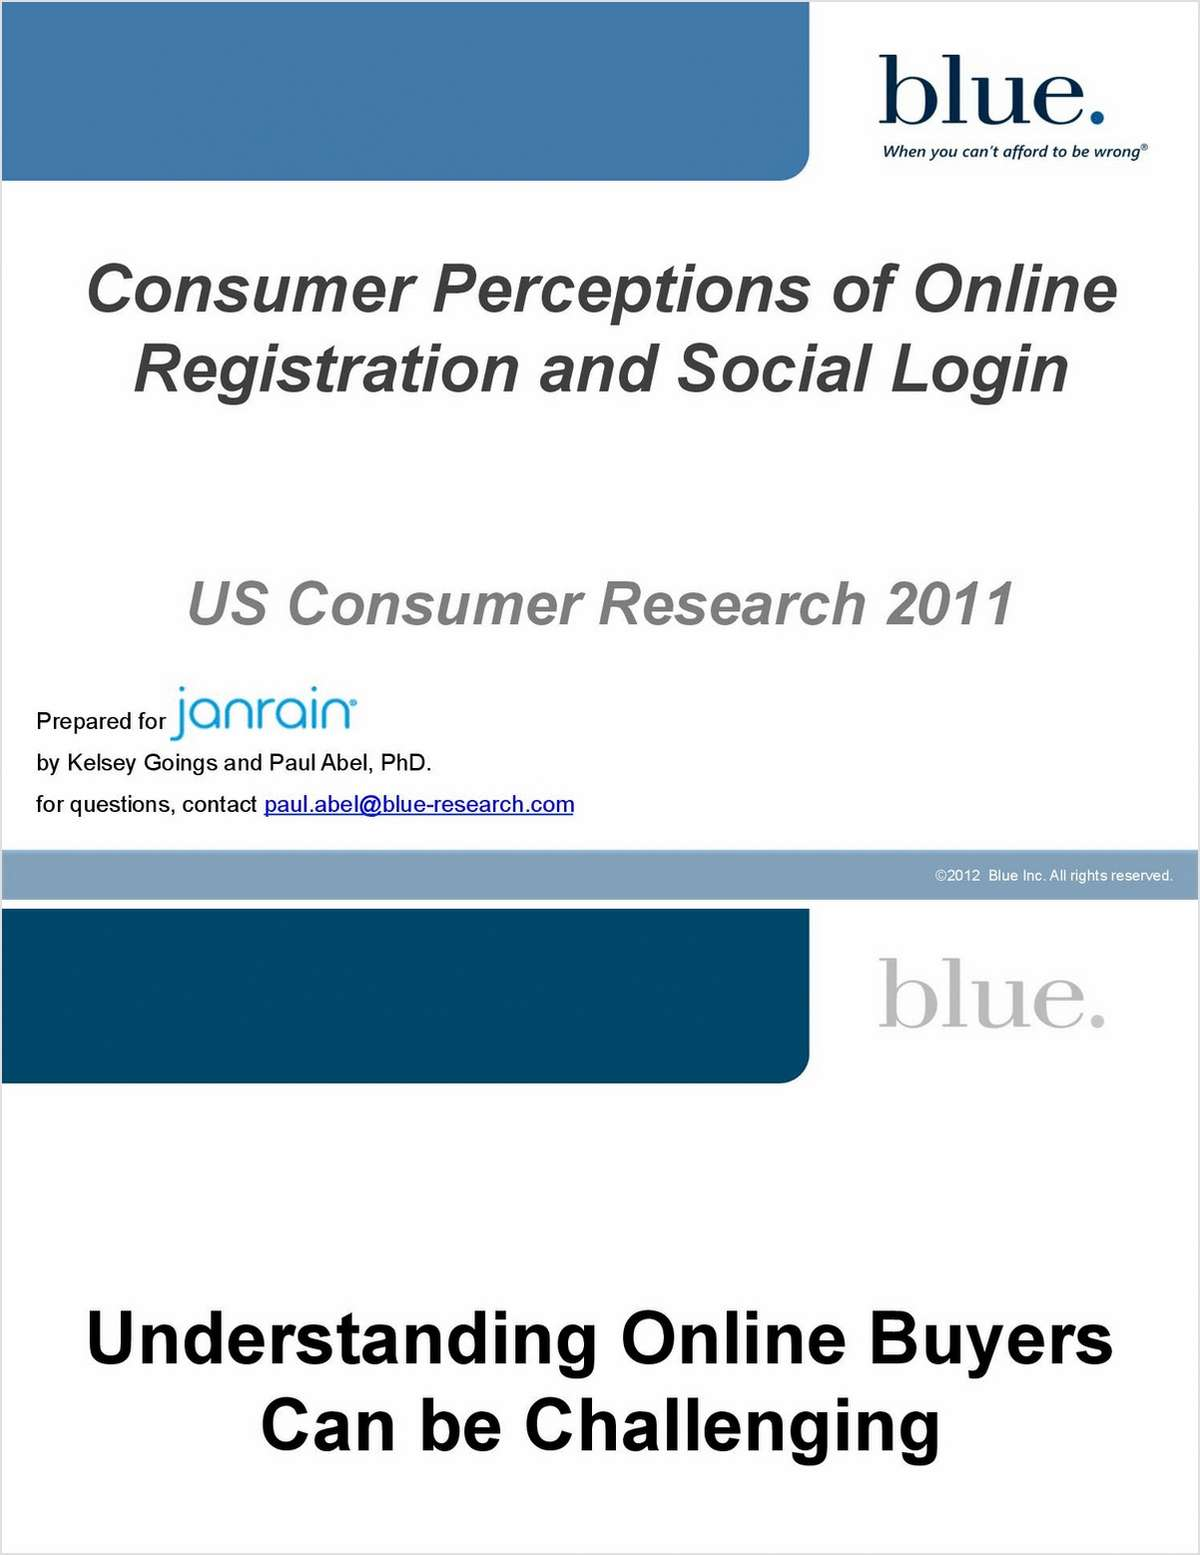 Consumers Leave Sites When Forced to Create an Account